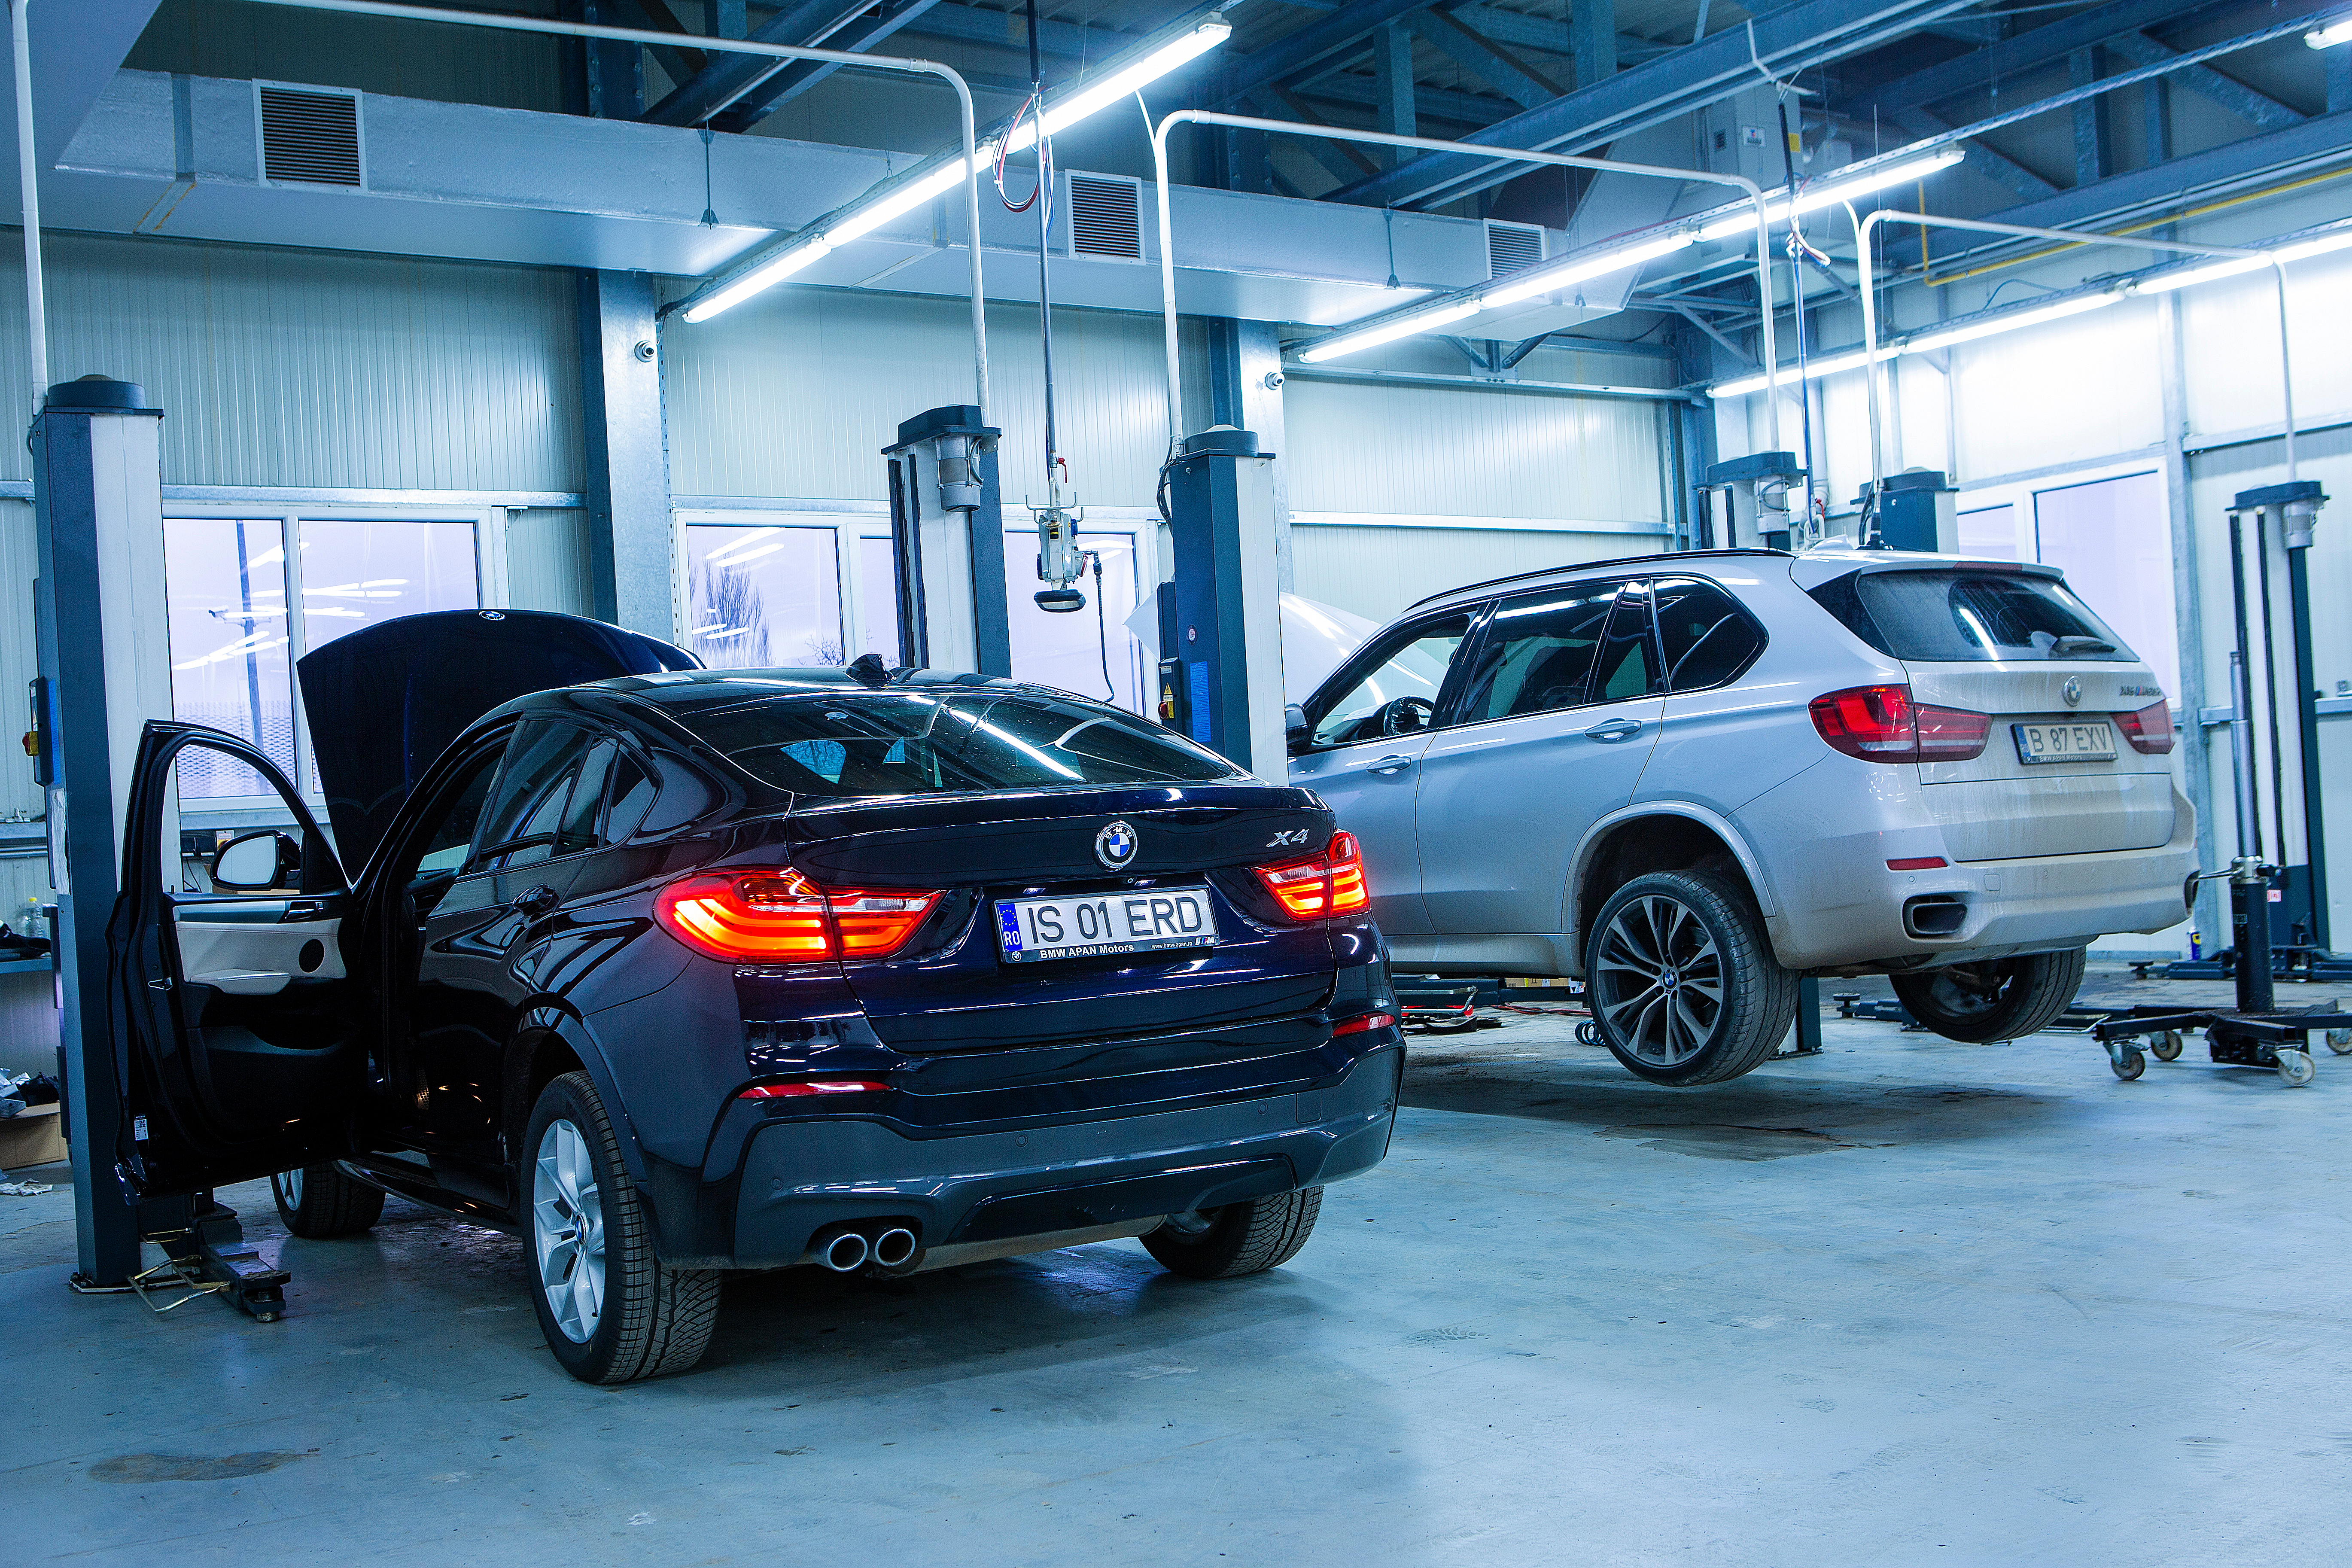 BMW DPF Pressure Too High For A Successful Regeneration